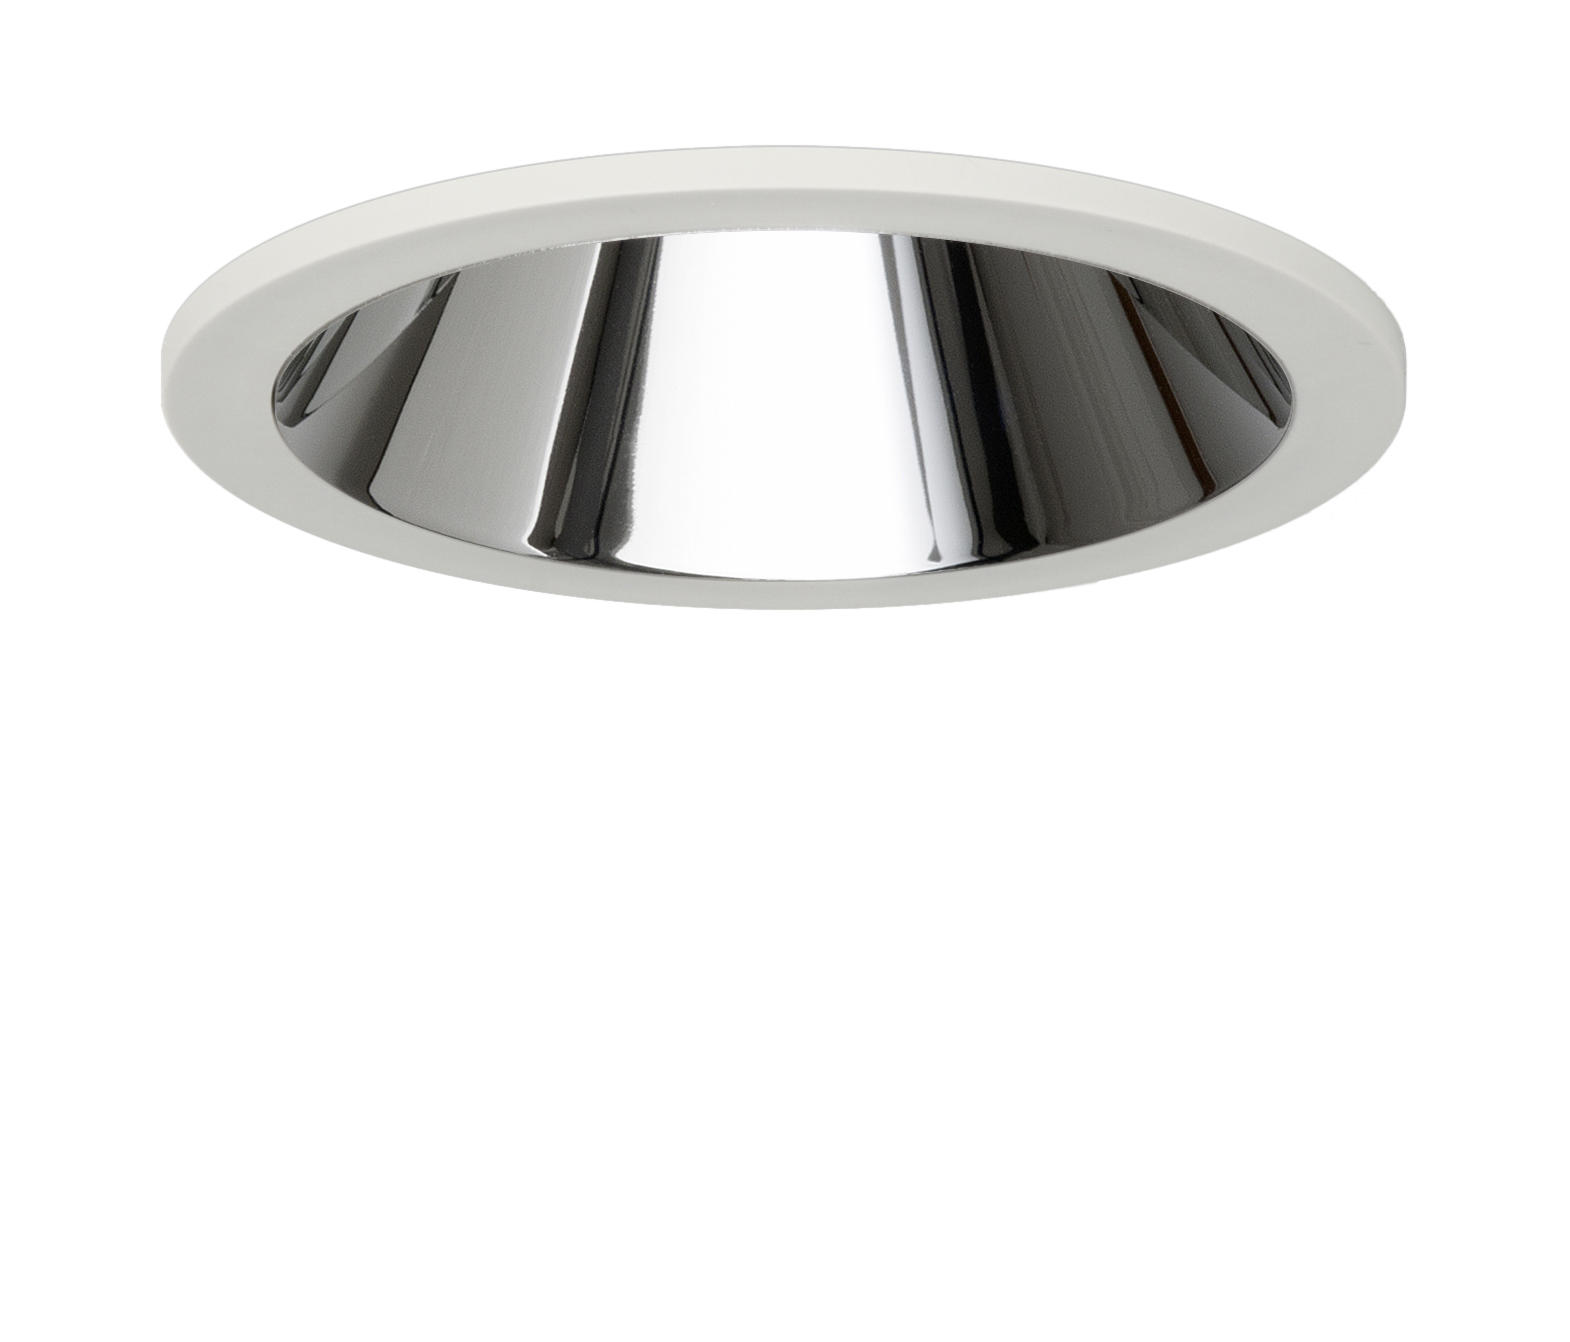 Luminaire Lighting Tritec Recessed Luminaire Round Downlight Recessed Ceiling